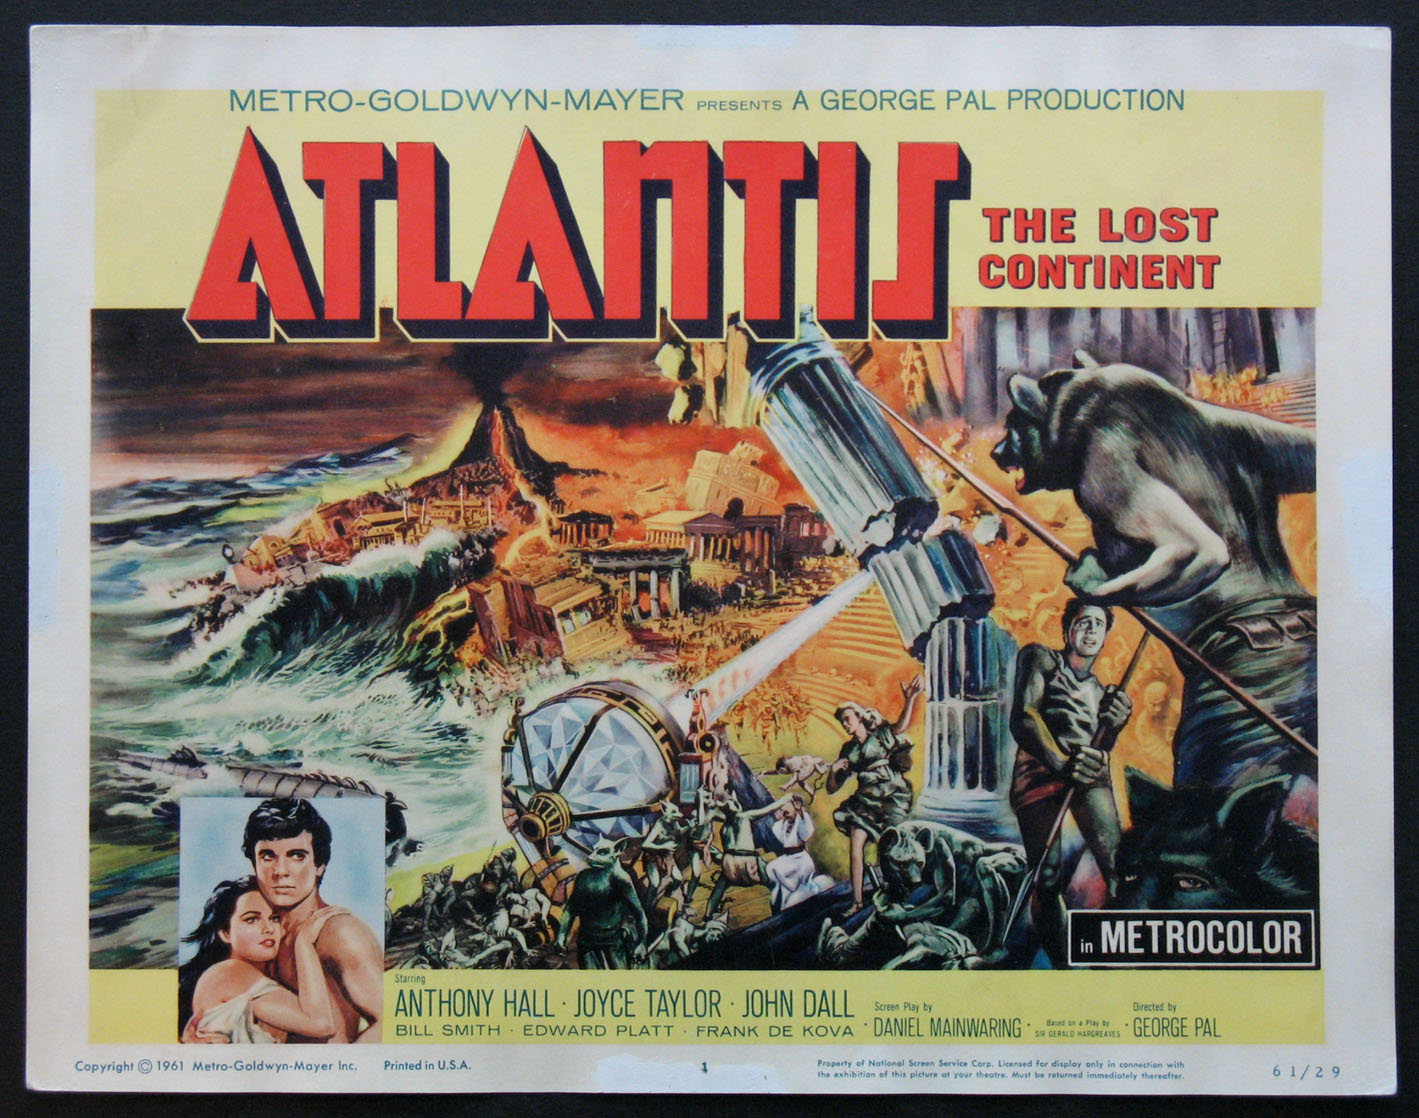 ATLANTIS, THE LOST CONTINENT @ FilmPosters.com